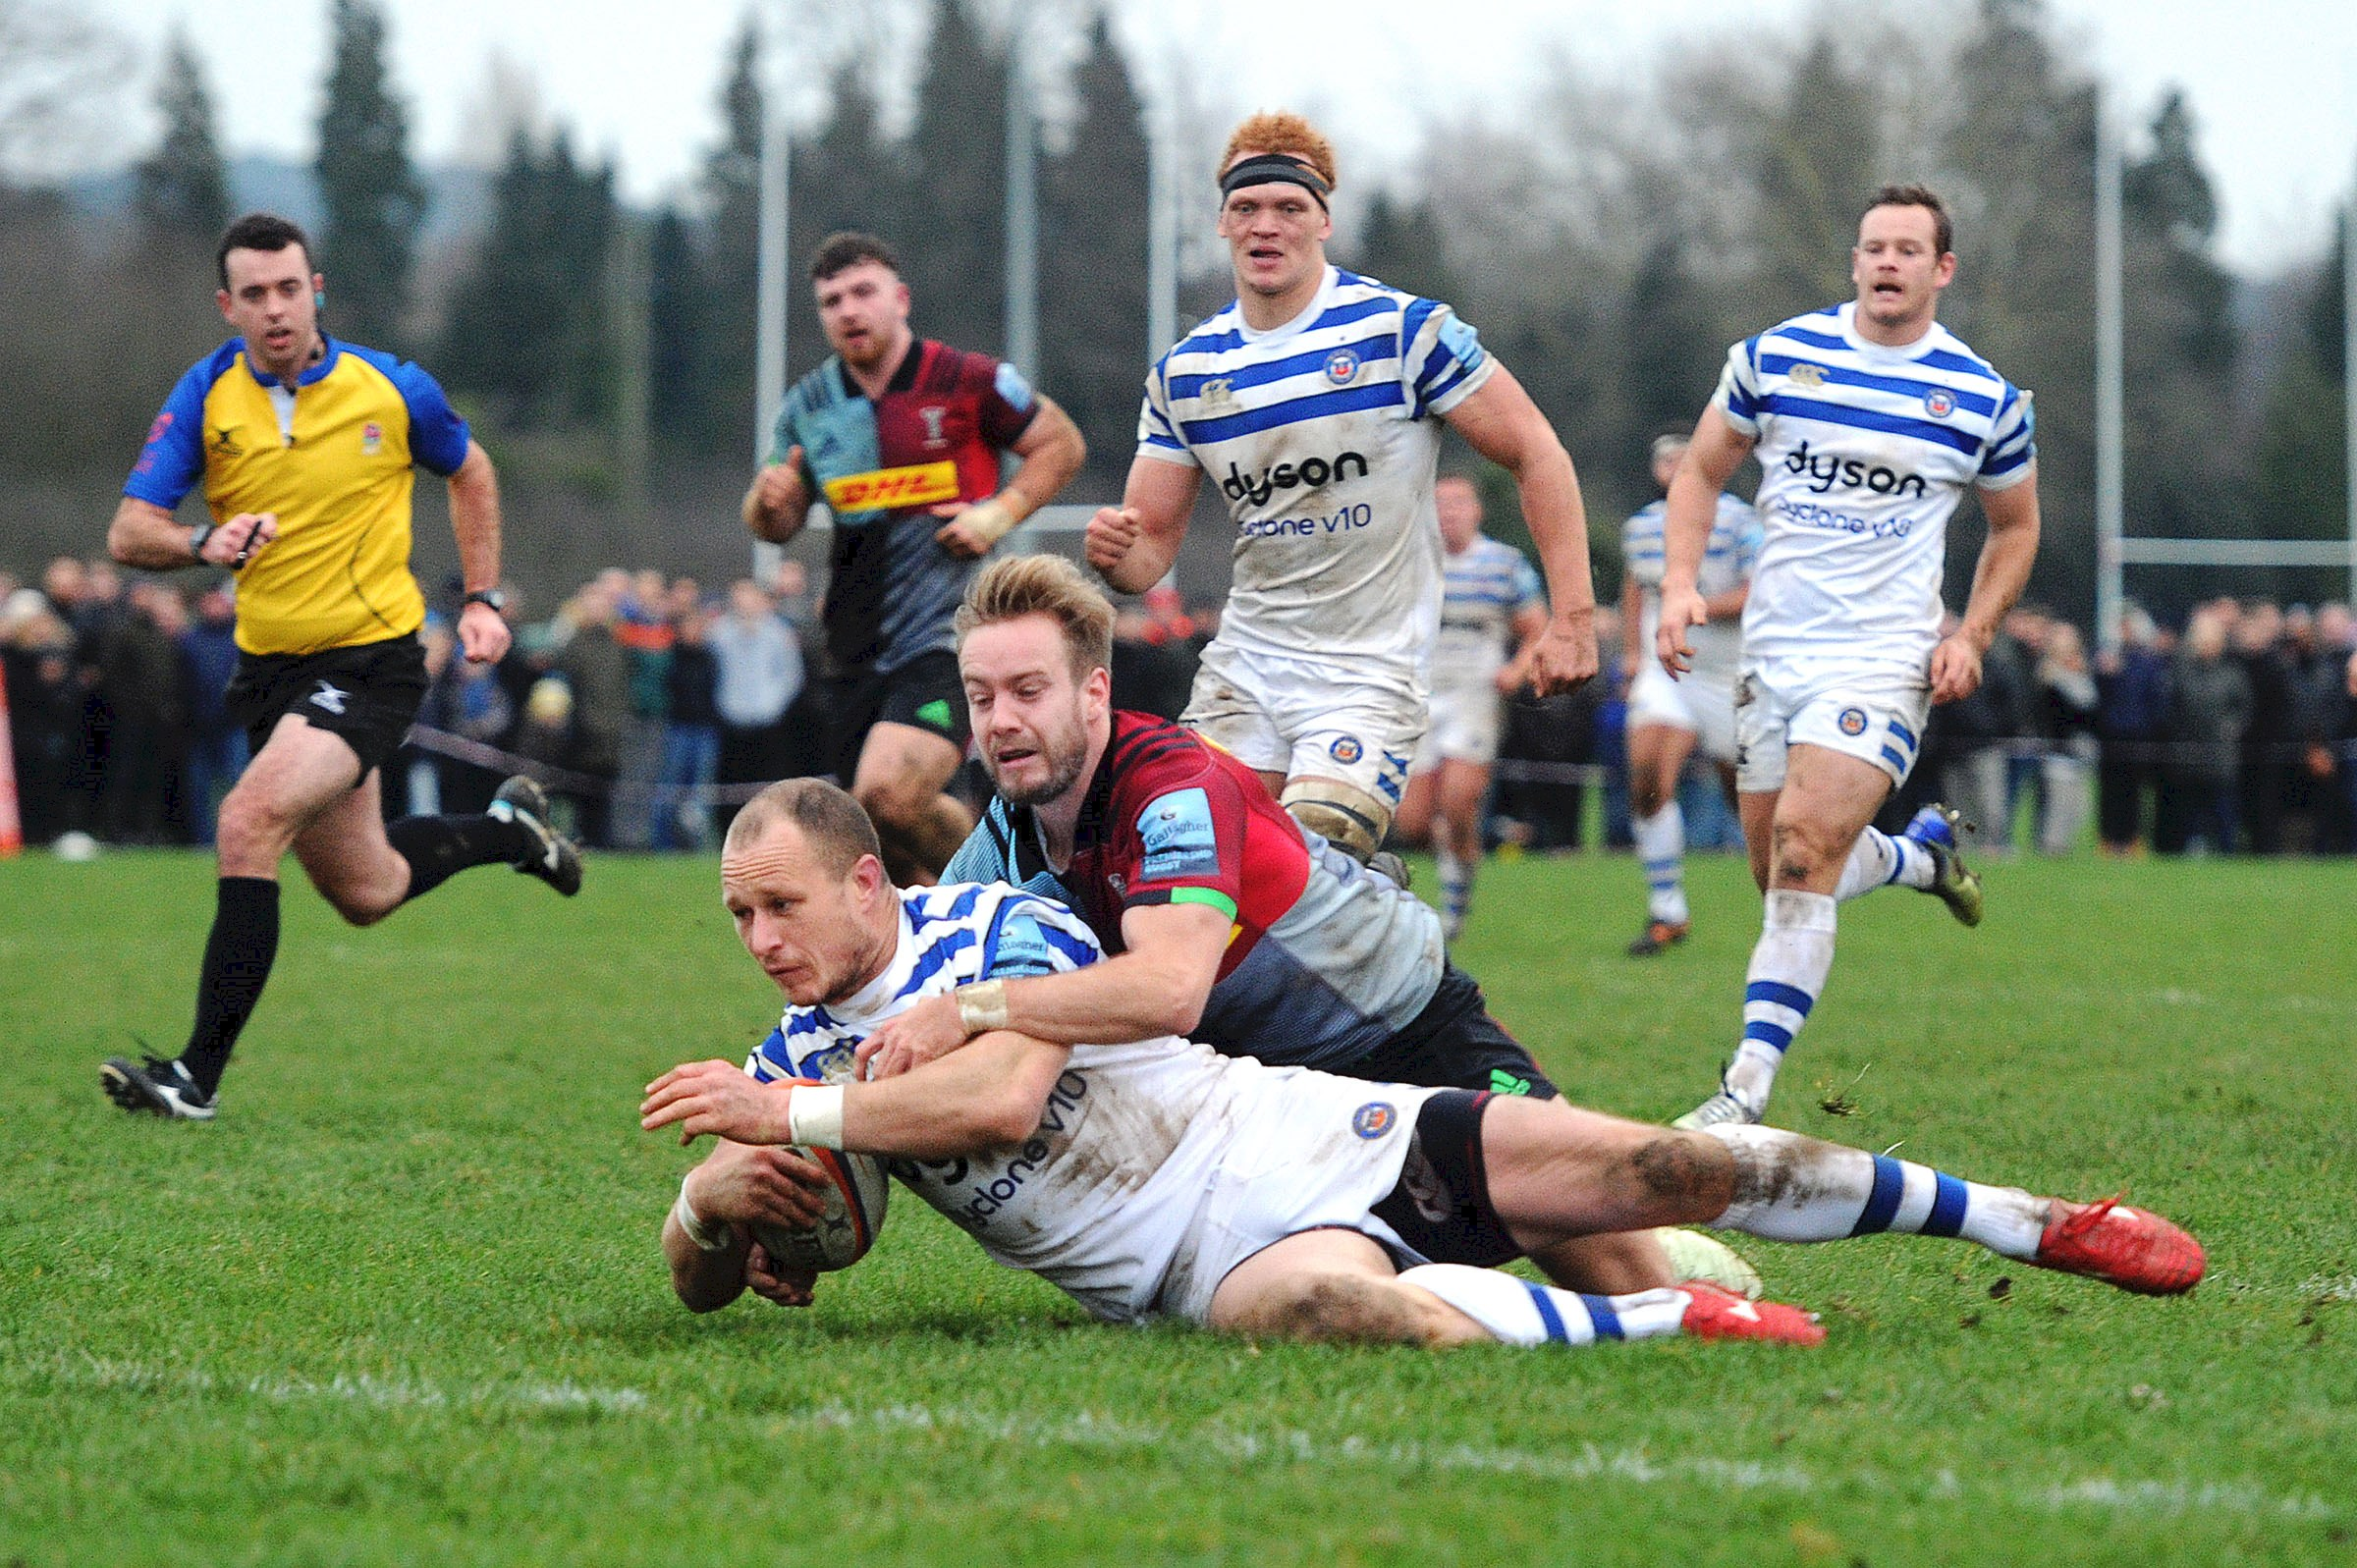 United make it three in a row with victory over Harlequins